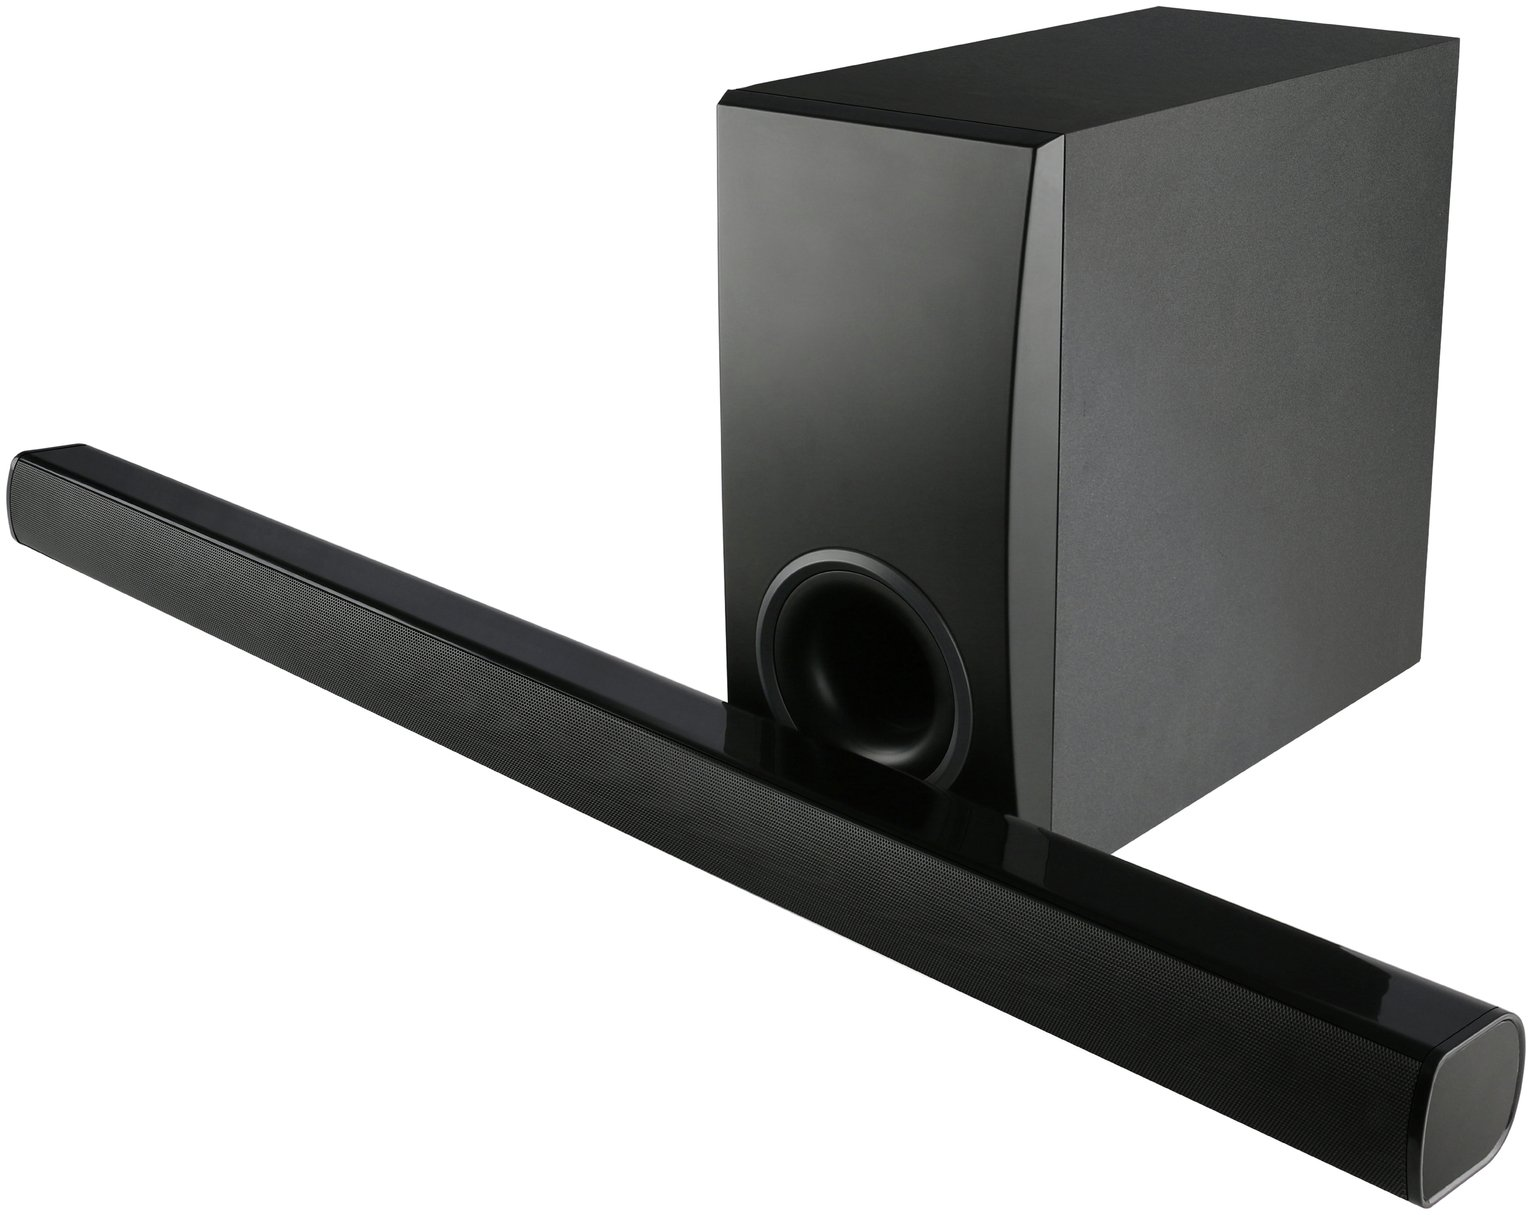 Image of Bush 100W 2.1Ch Sound Bar with Subwoofer